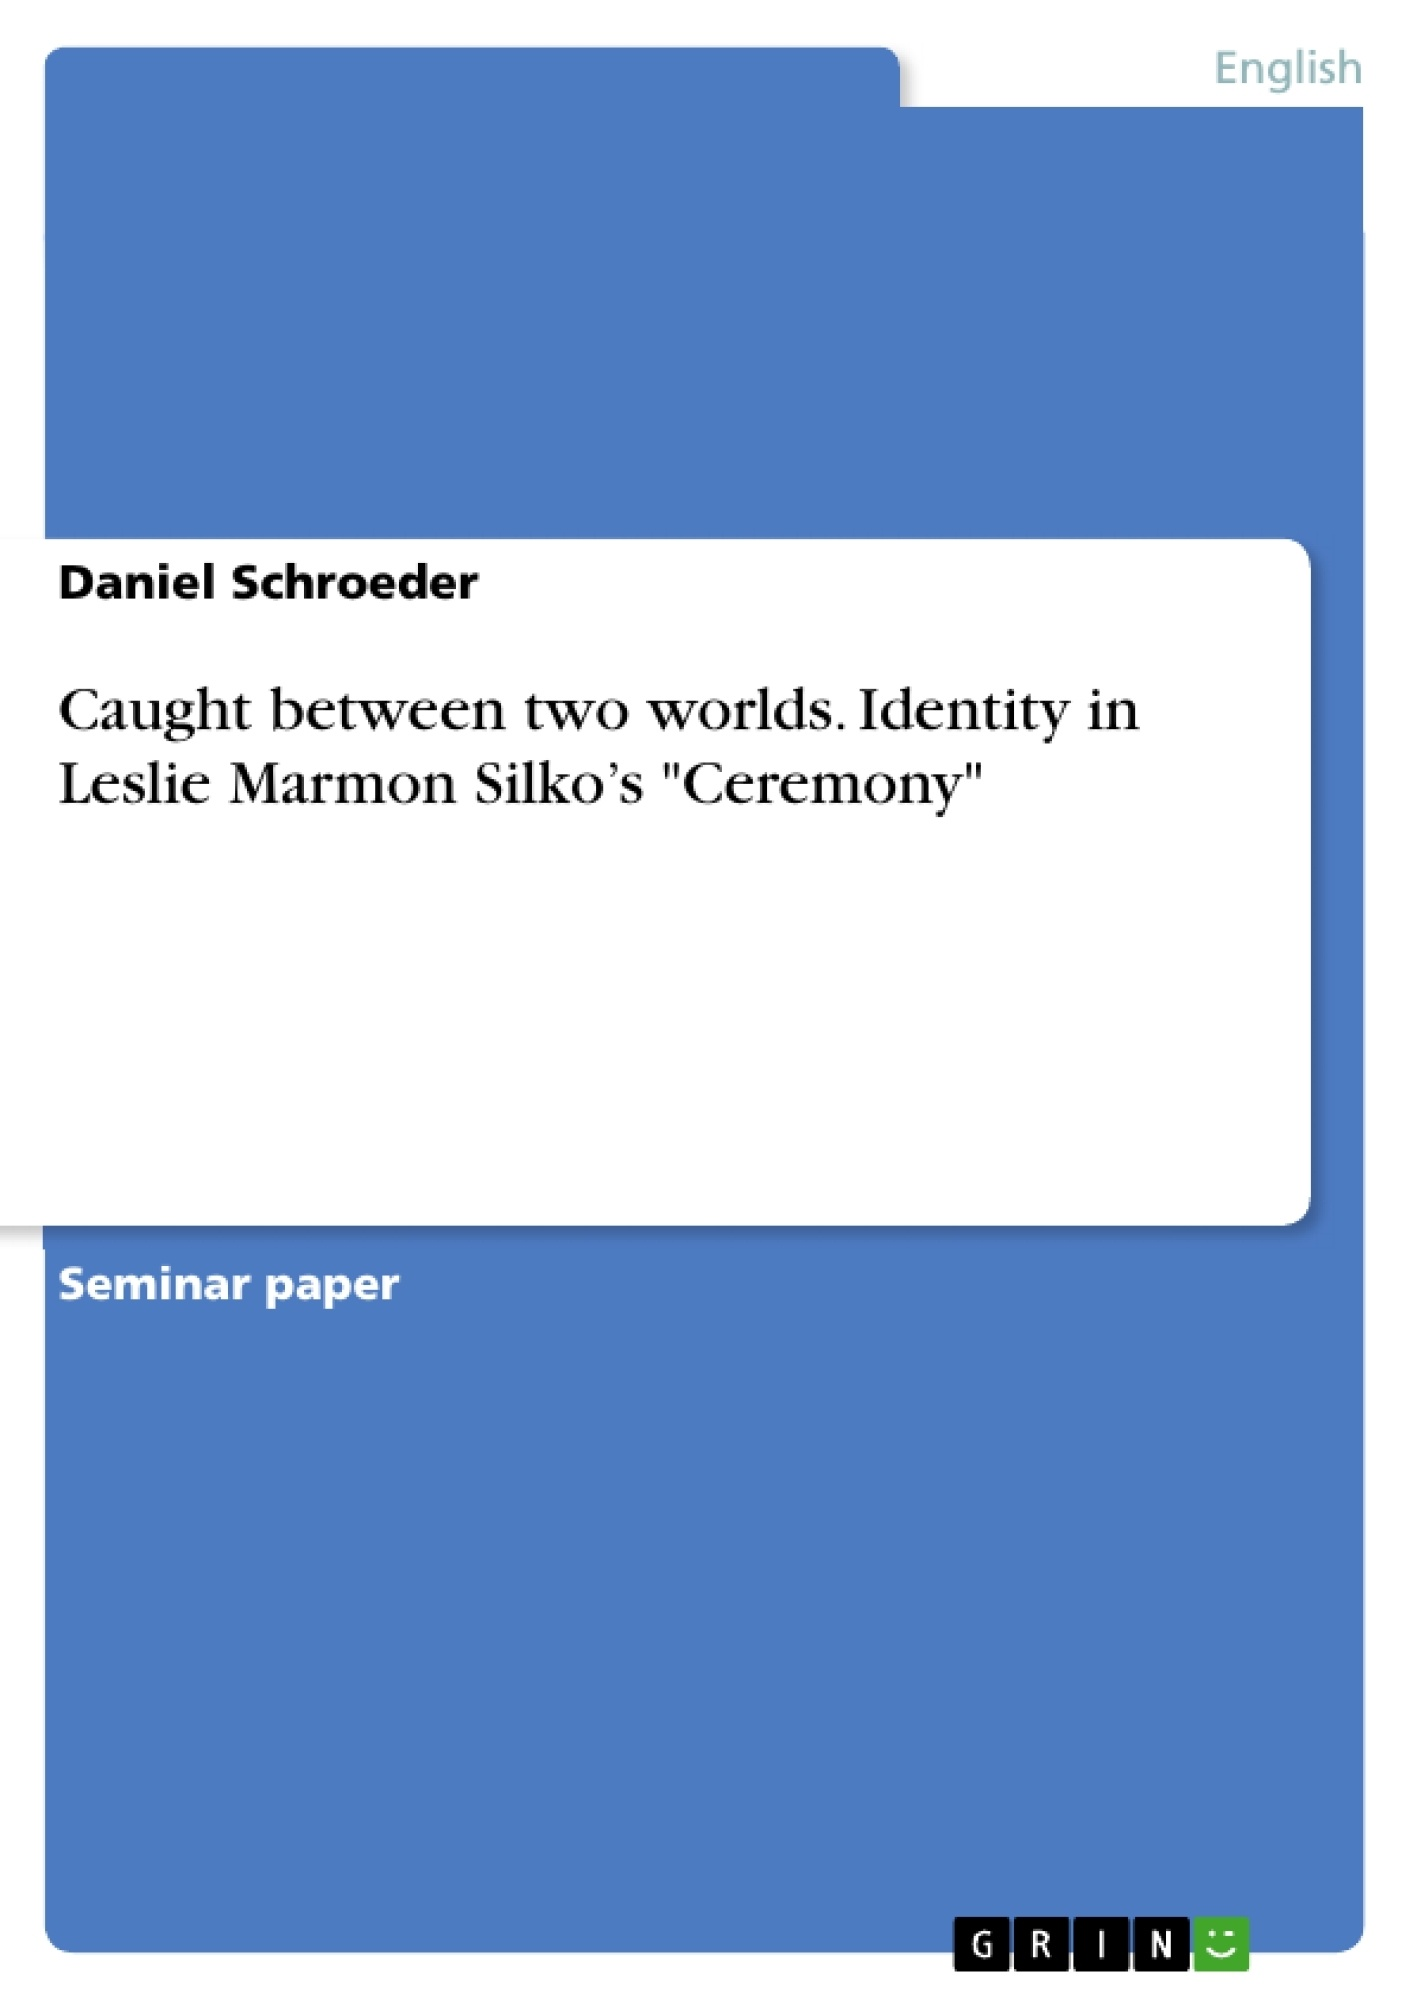 ceremony silko essay Title length color rating : analysis of ceremony, by leslie marmon silko - people often feel that their opinions do not matter, that they cannot make a difference.